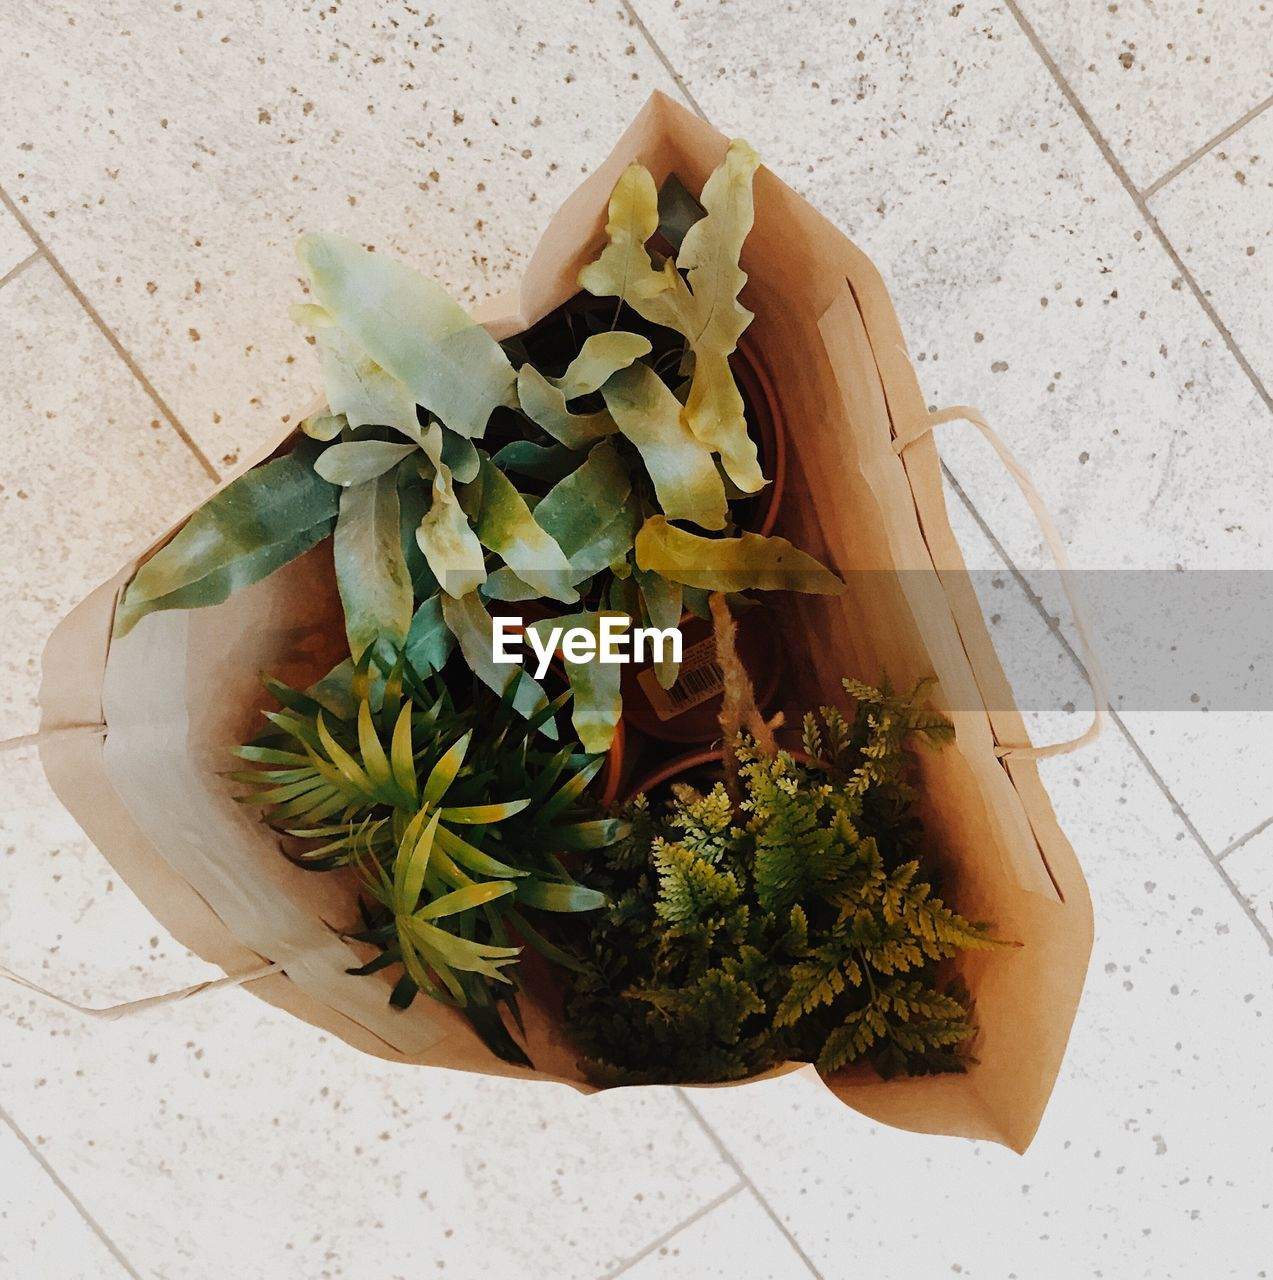 HIGH ANGLE VIEW OF POTTED PLANT IN PLATE ON TABLE